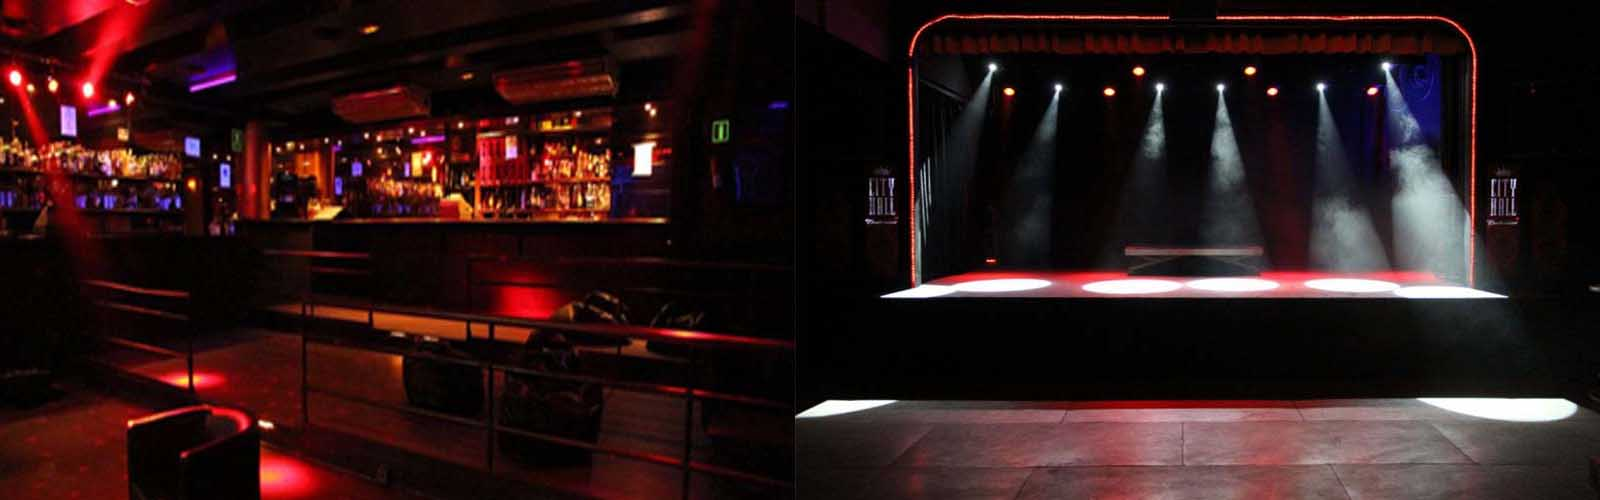 Experience the Barcelona Nightlife at Nightclub City Hall